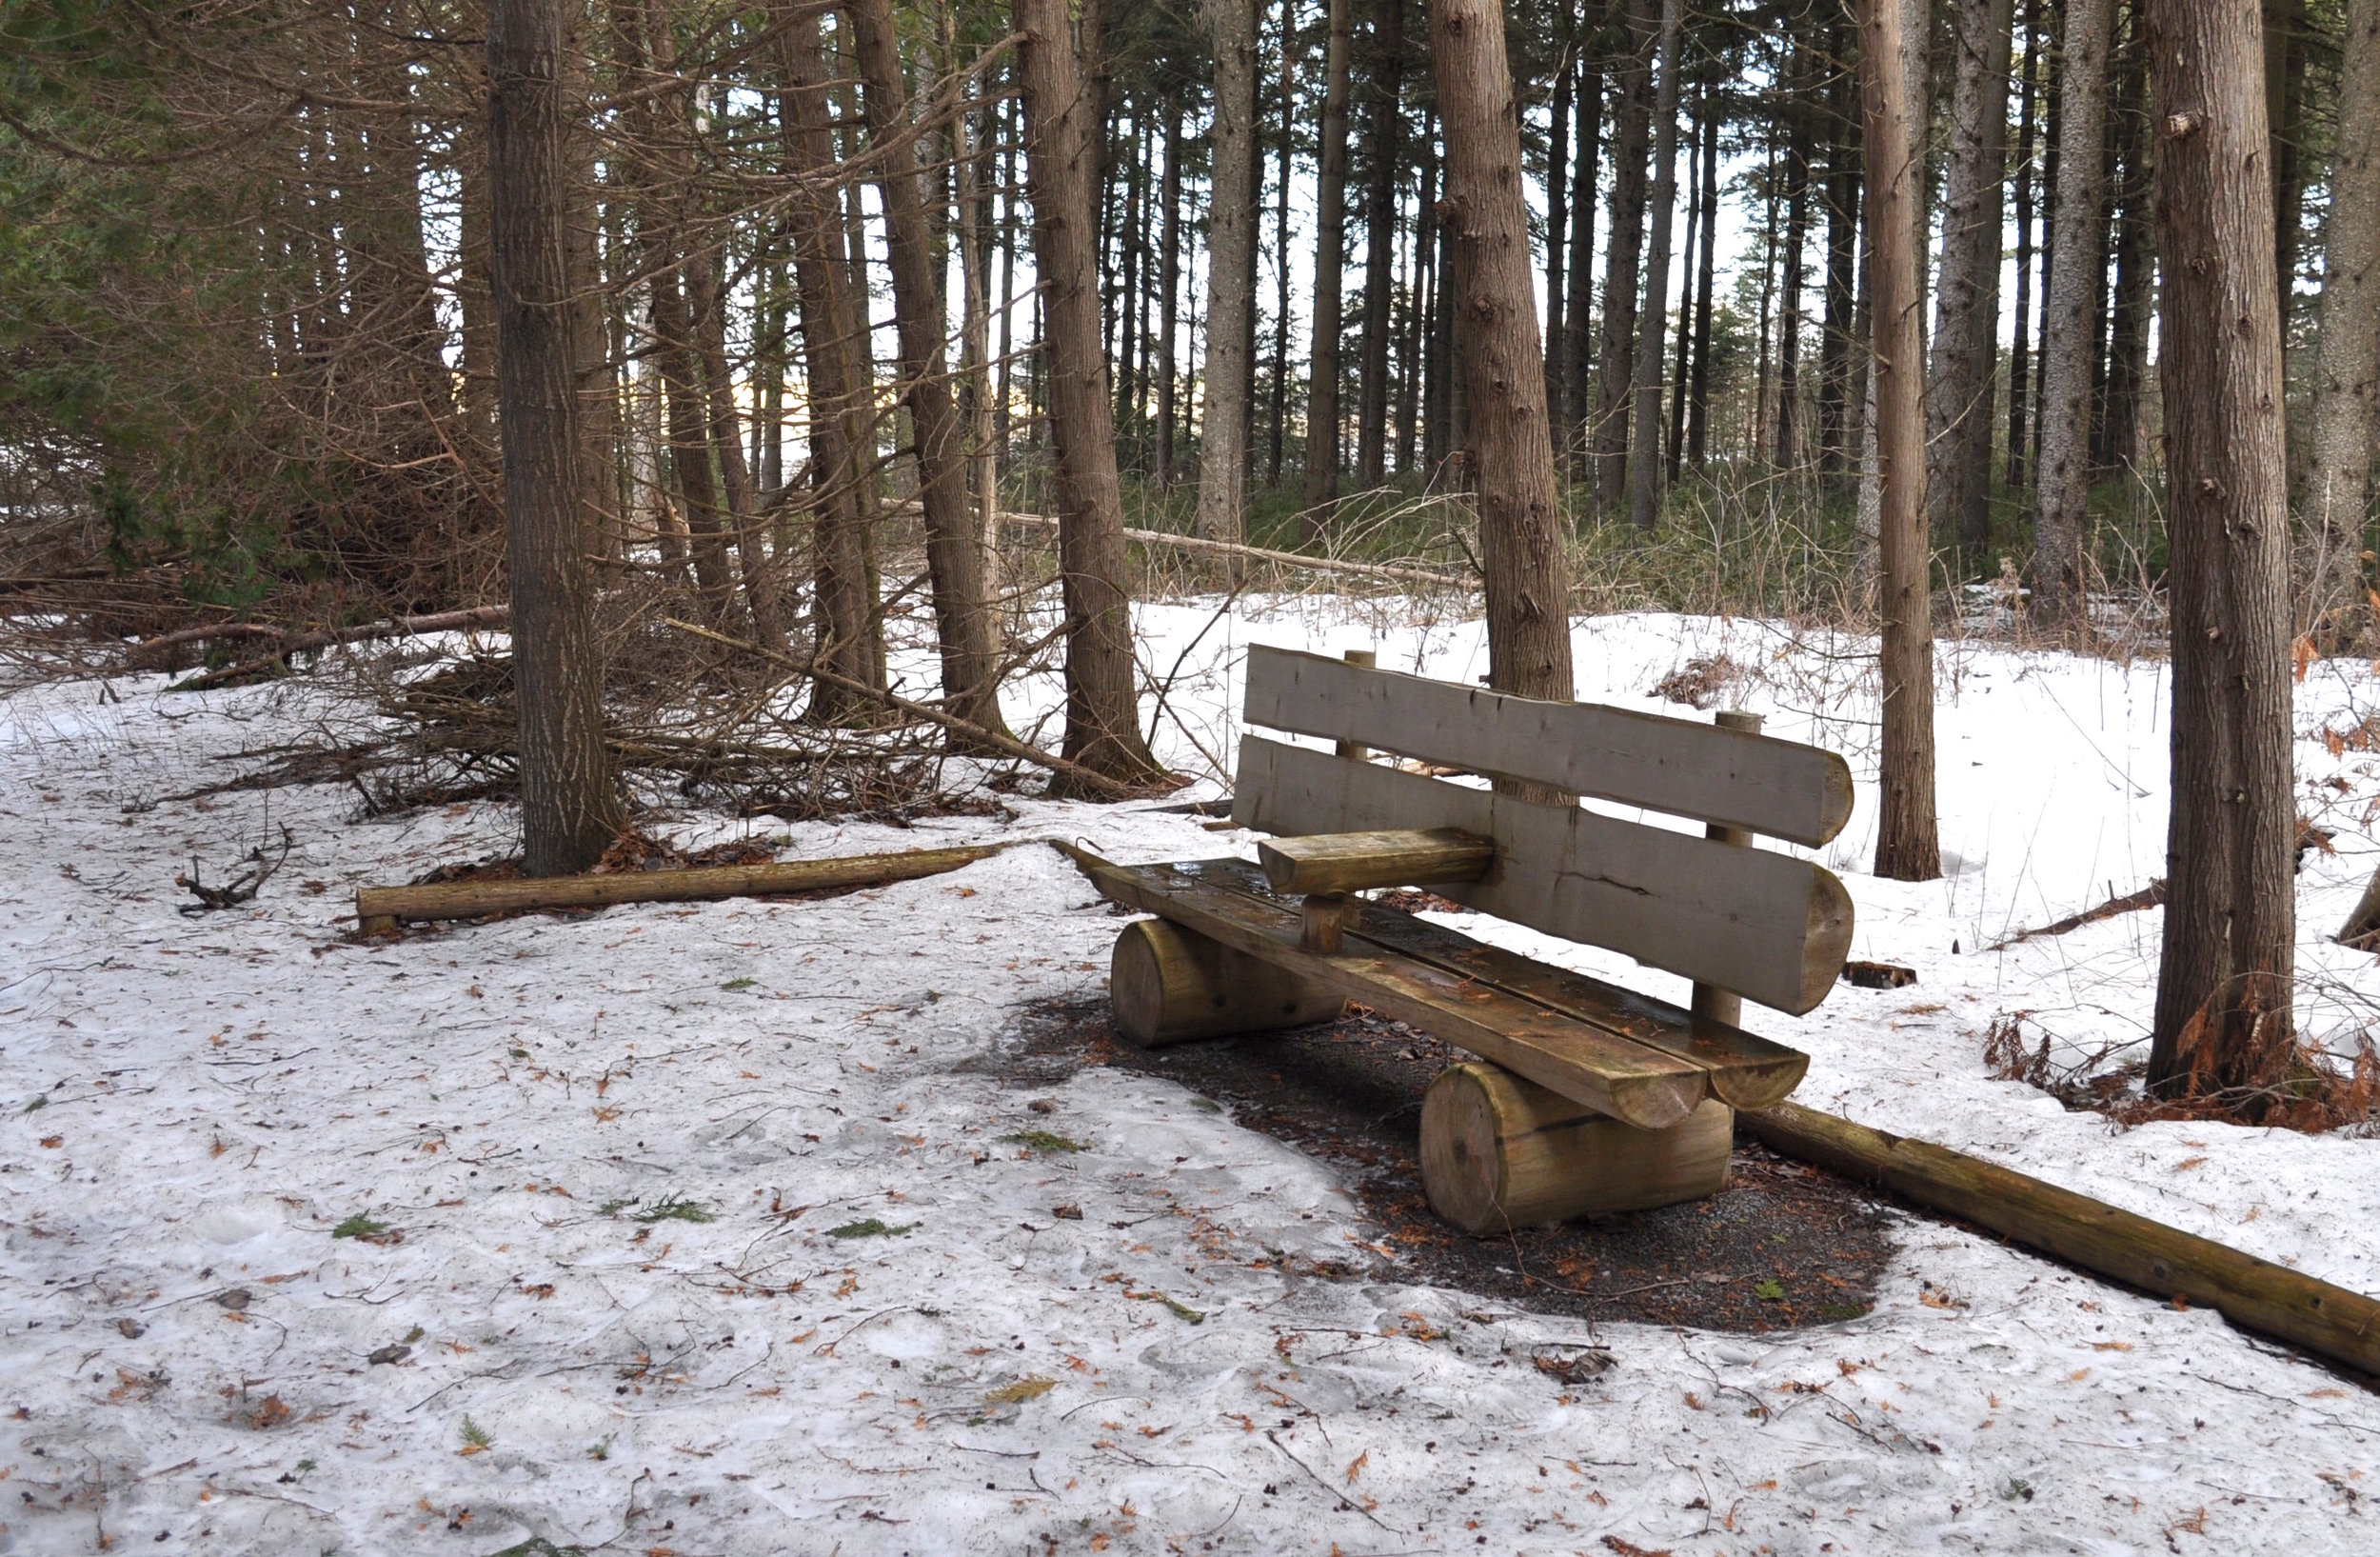 One of the many benches placed throughout the trails.